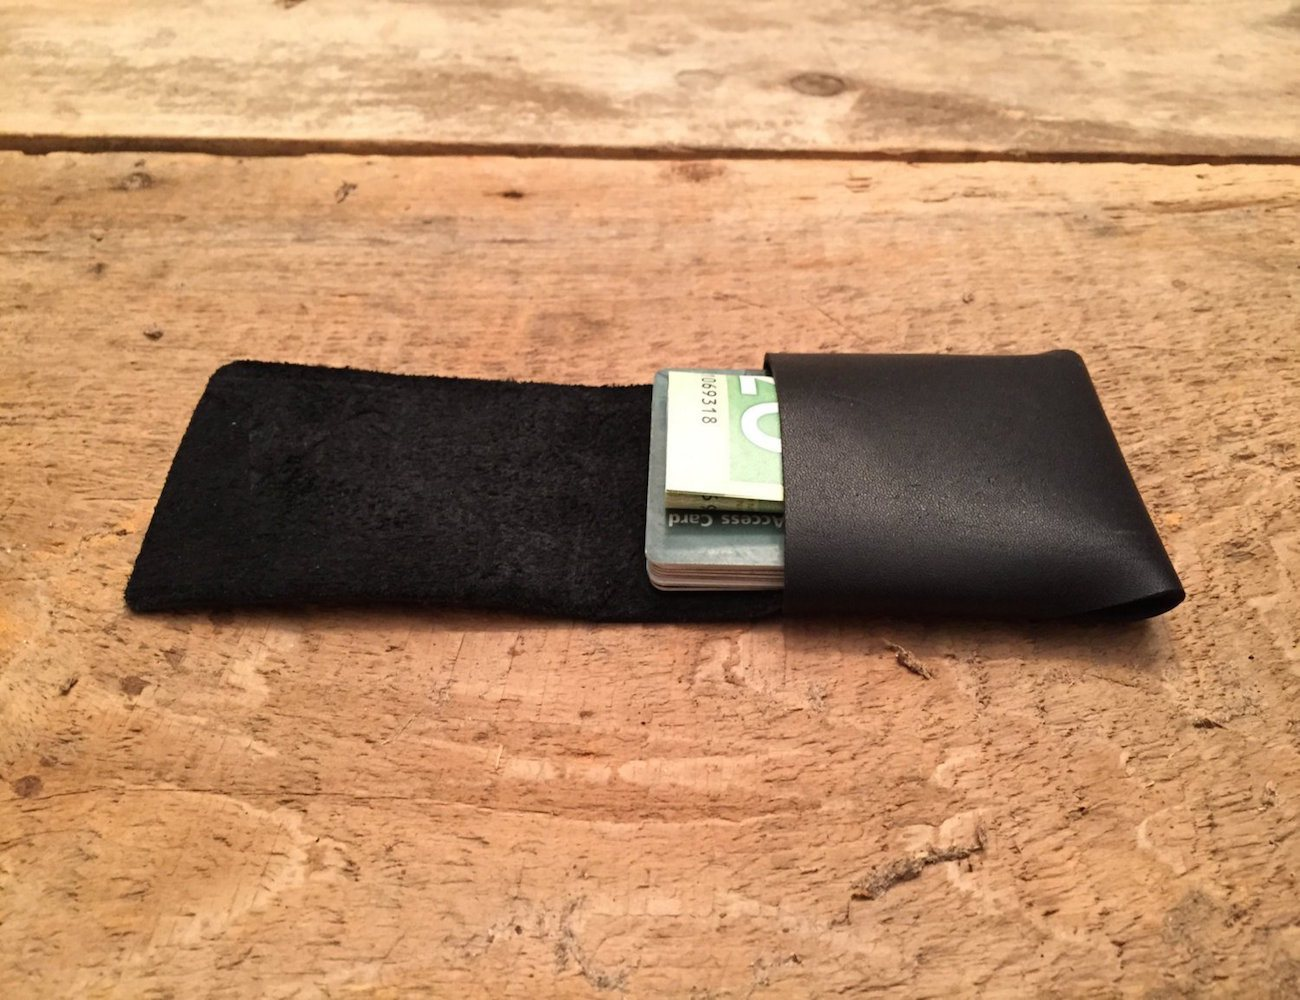 Stitchless Wallet by Tyler Pratt – Holds Cards and Folded Bills